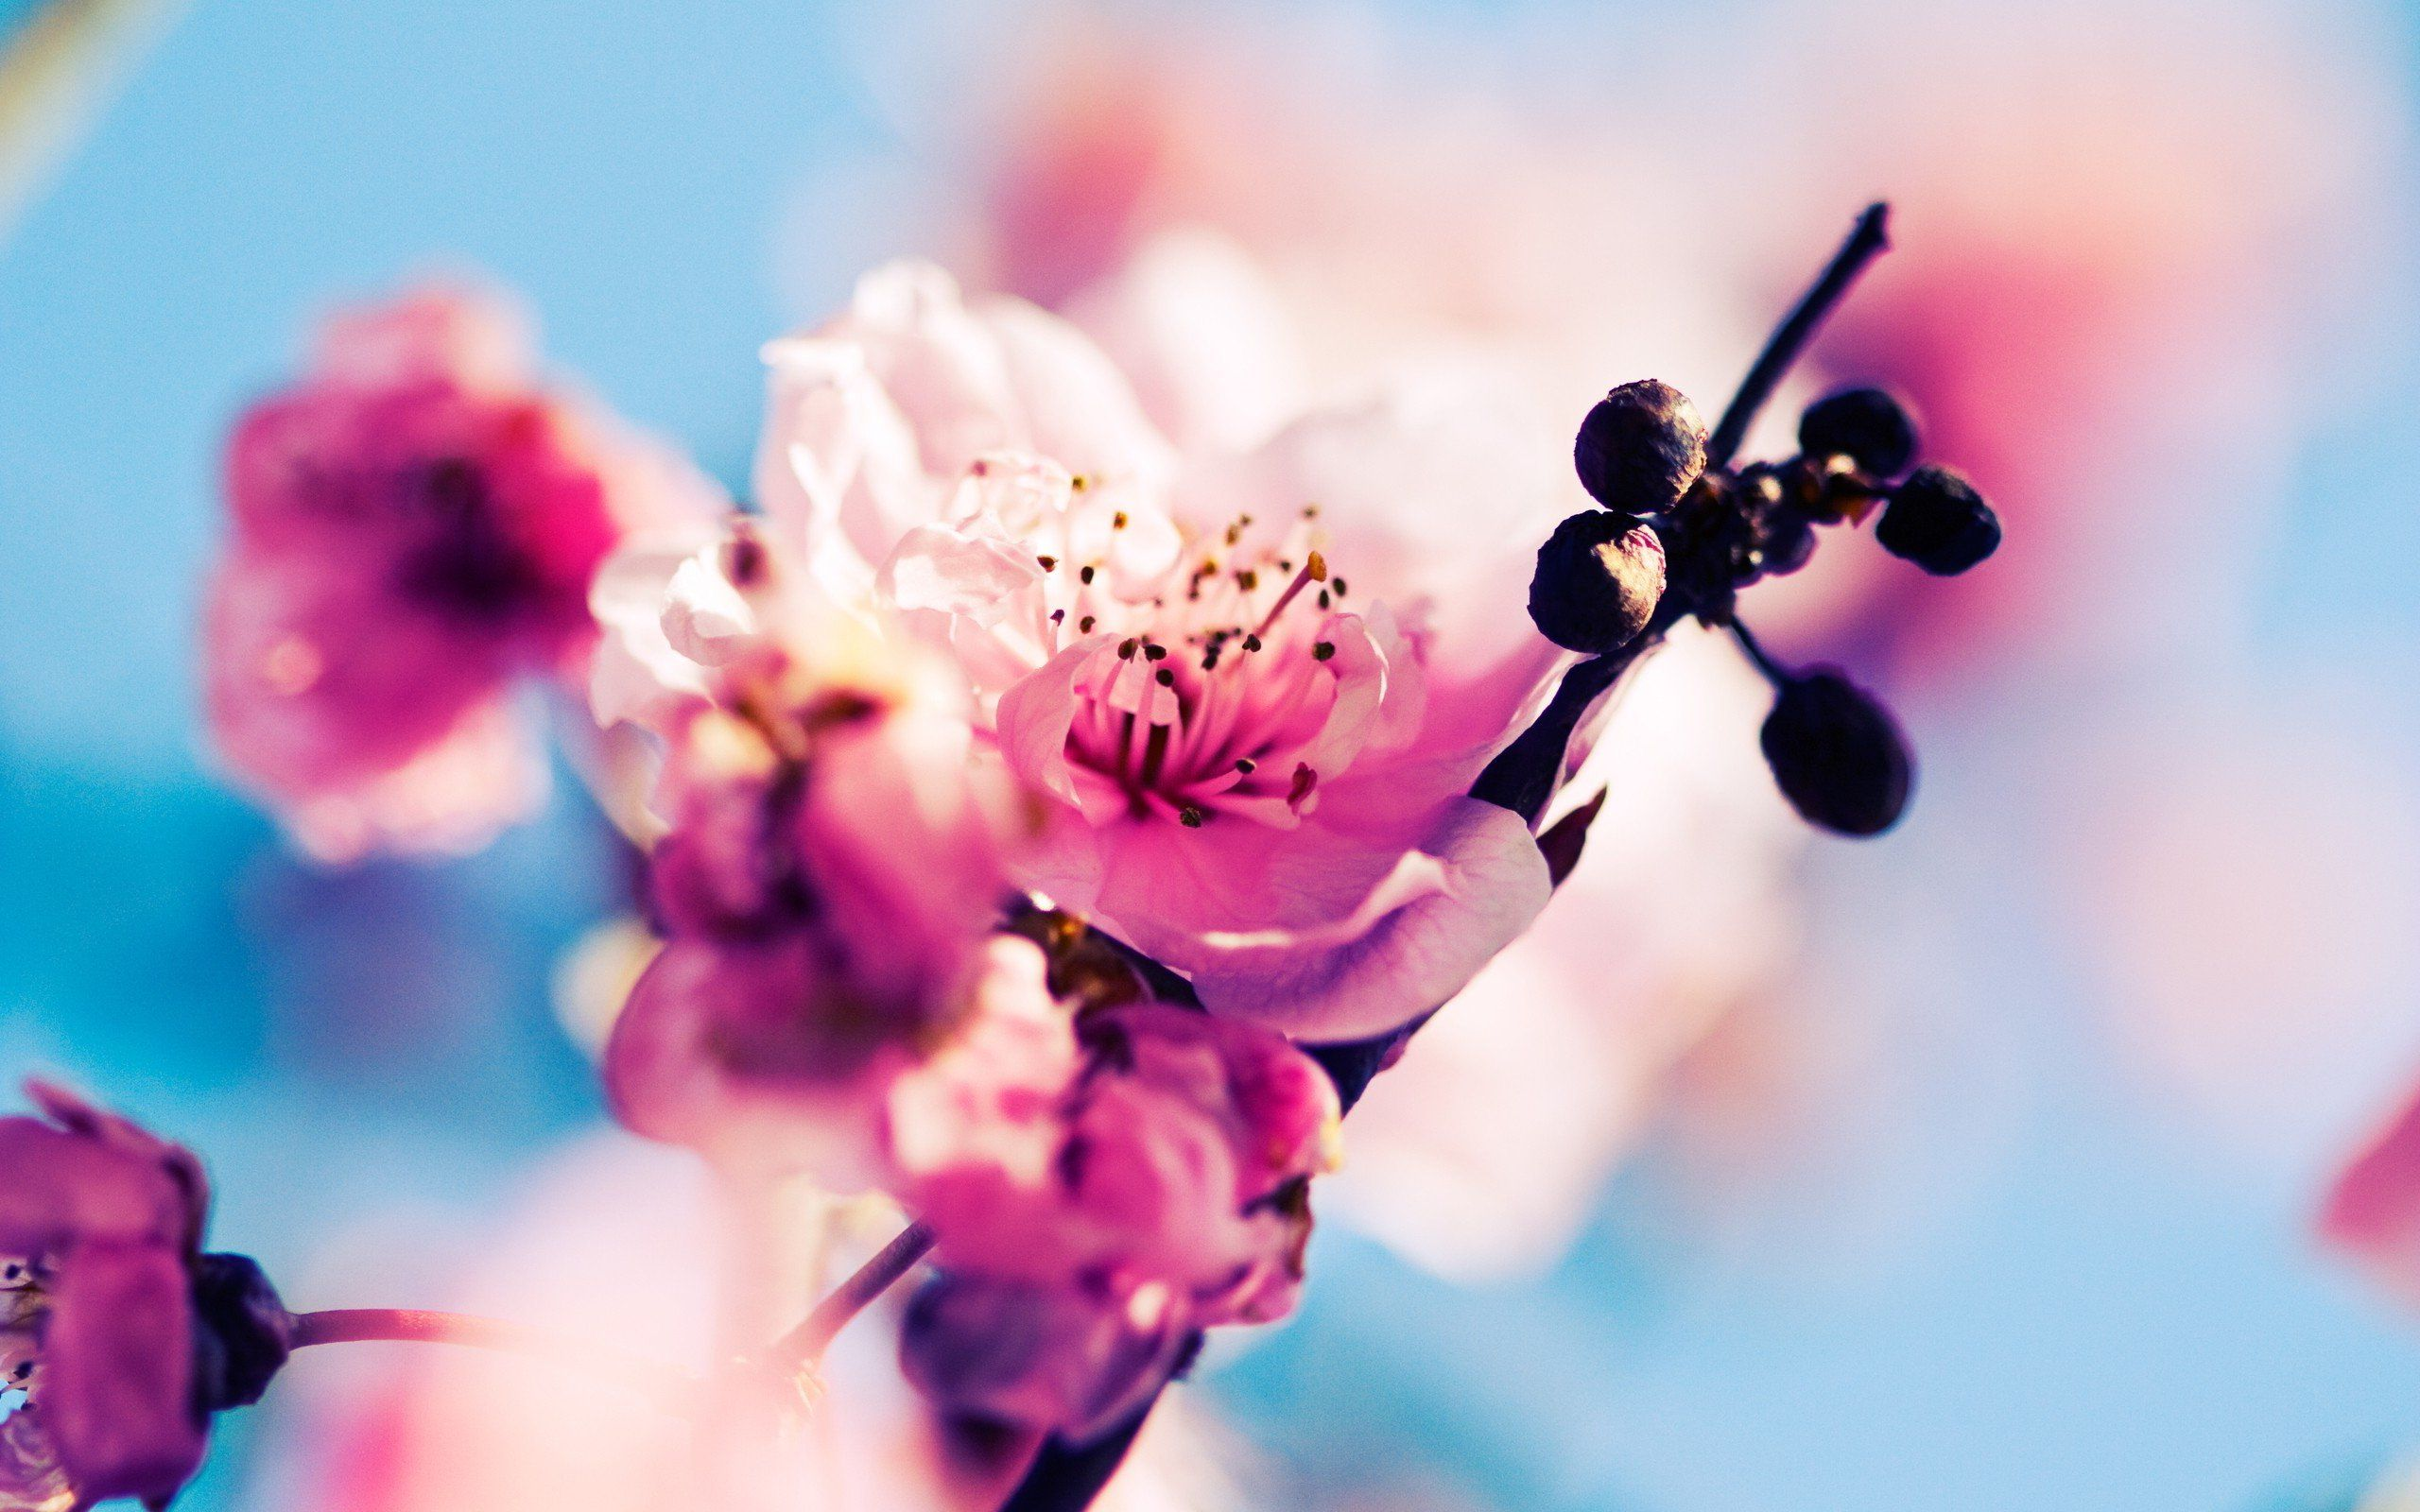 Spring Wallpapers Hd Download Free Hd Wallpapers Pinterest